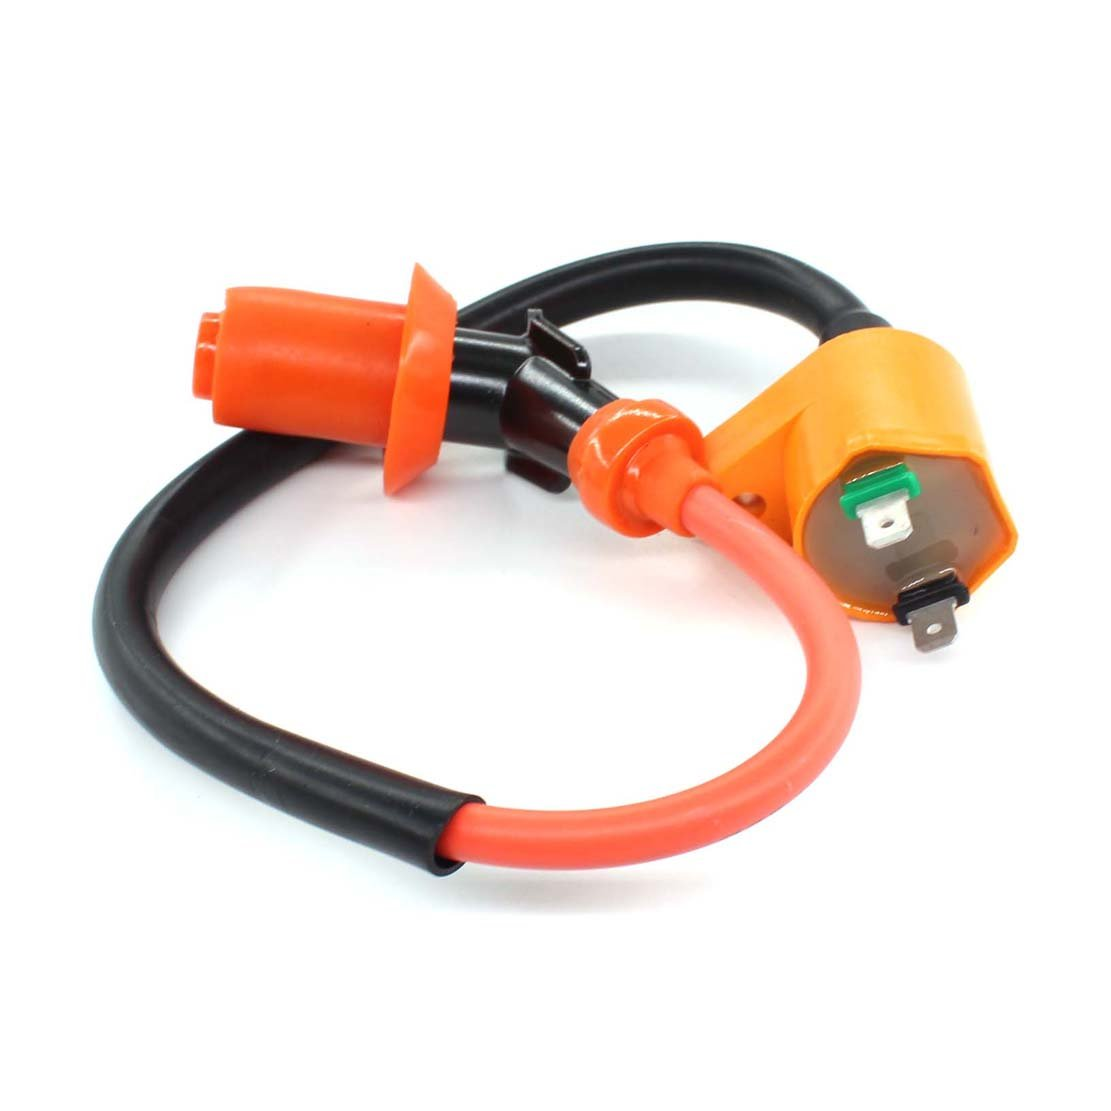 Uspeeda Ignition Coil Spark Plug For Tomberlin Crossfire 150r Go Kart Wiring Harness 150 150cc Cart Automotive